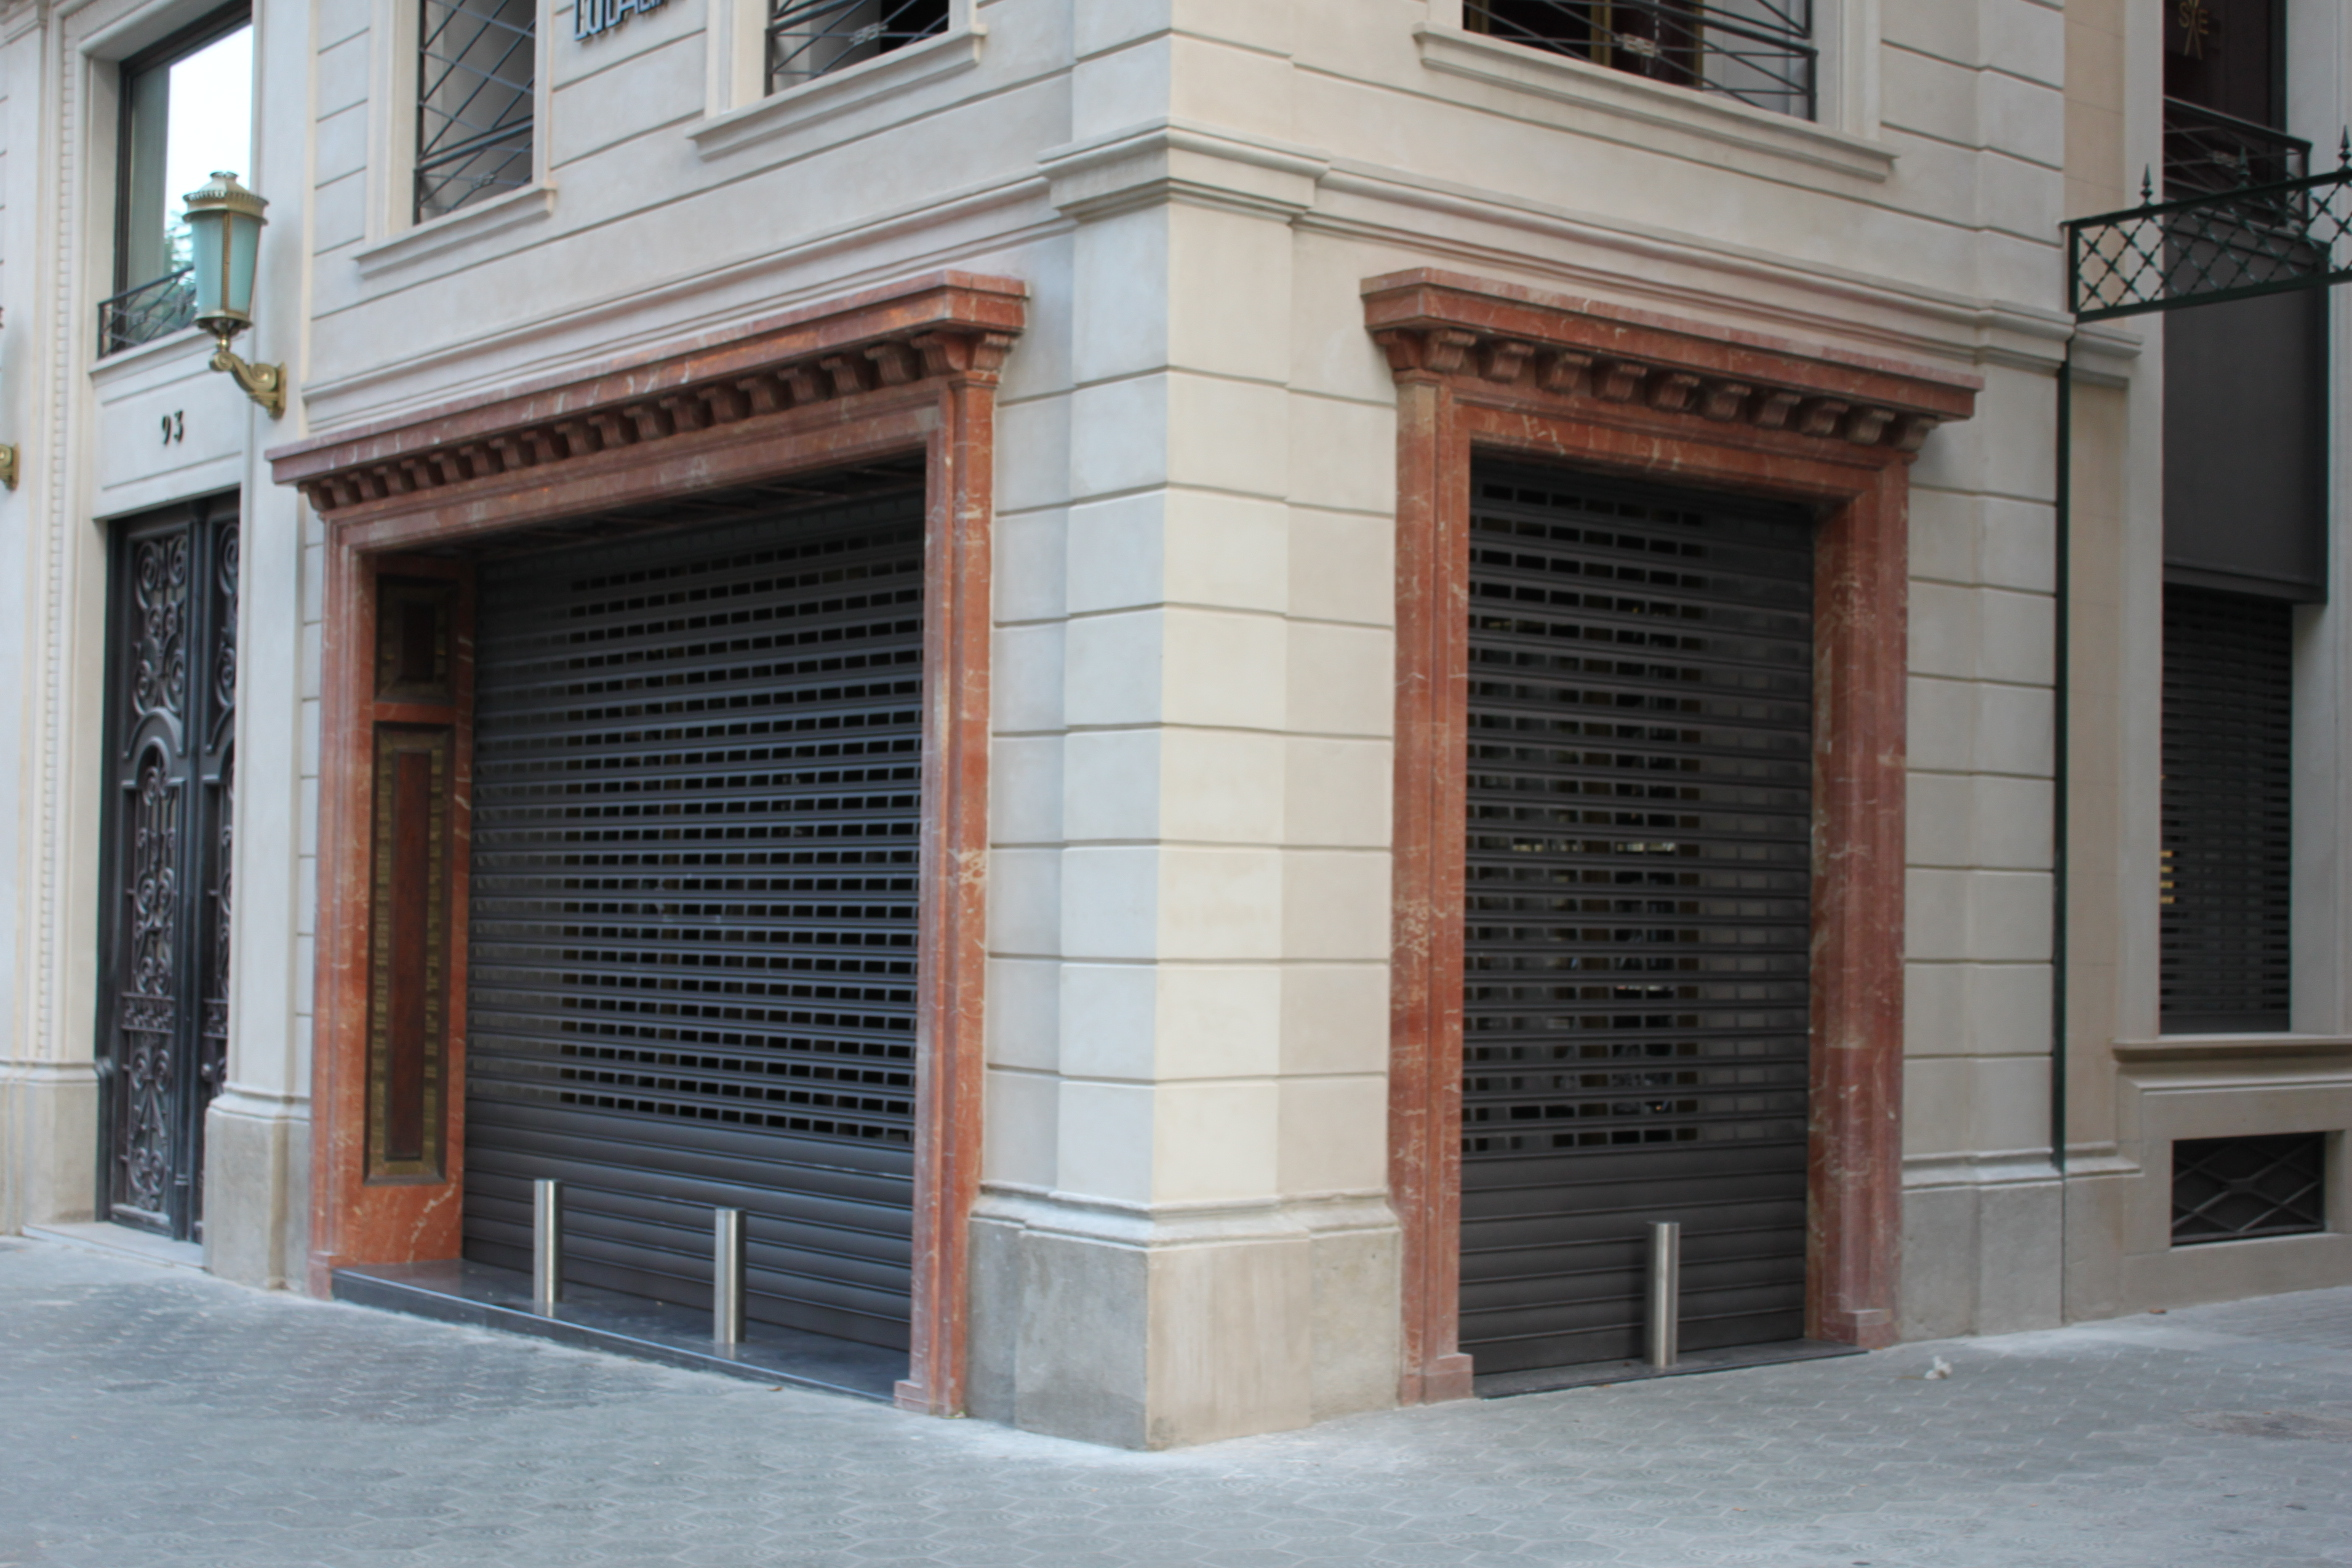 Security bollards installed in the luxury store